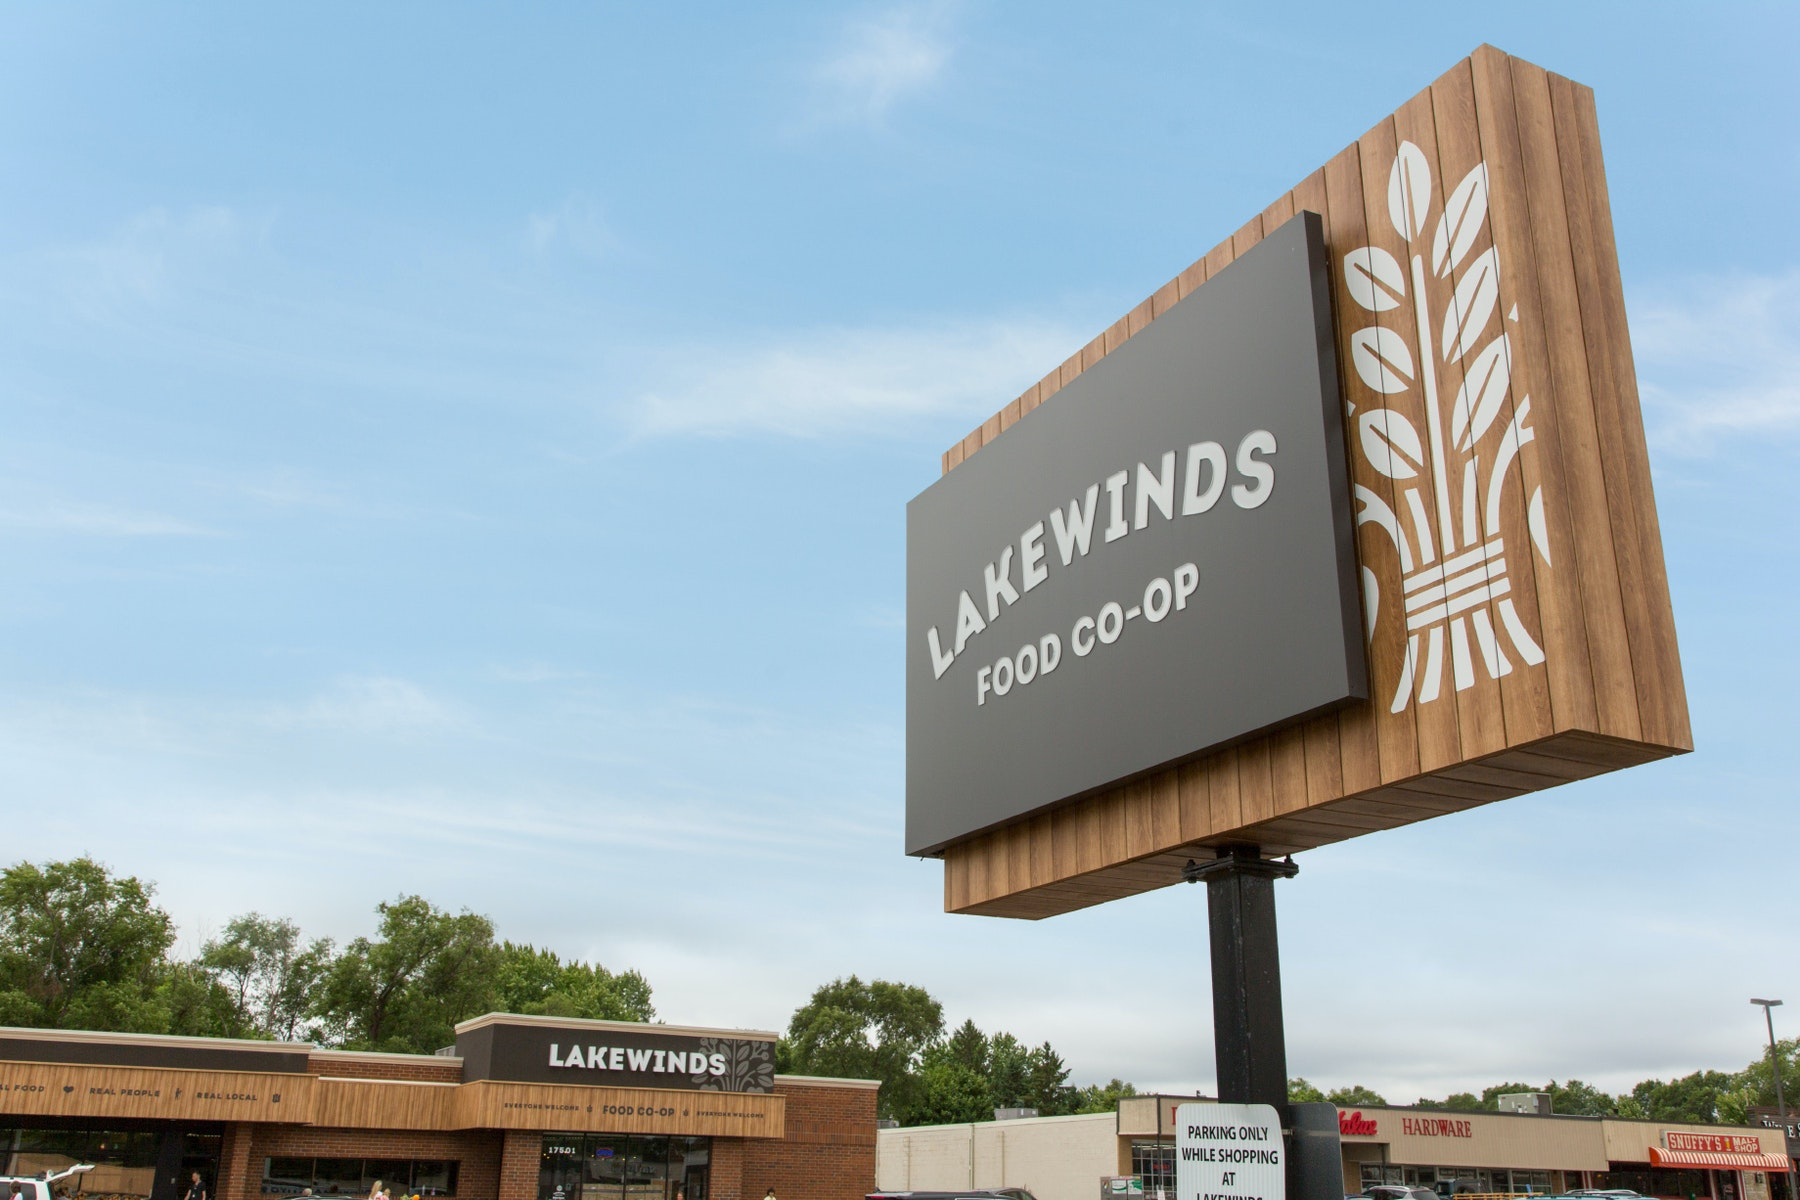 Lakewinds Sign C